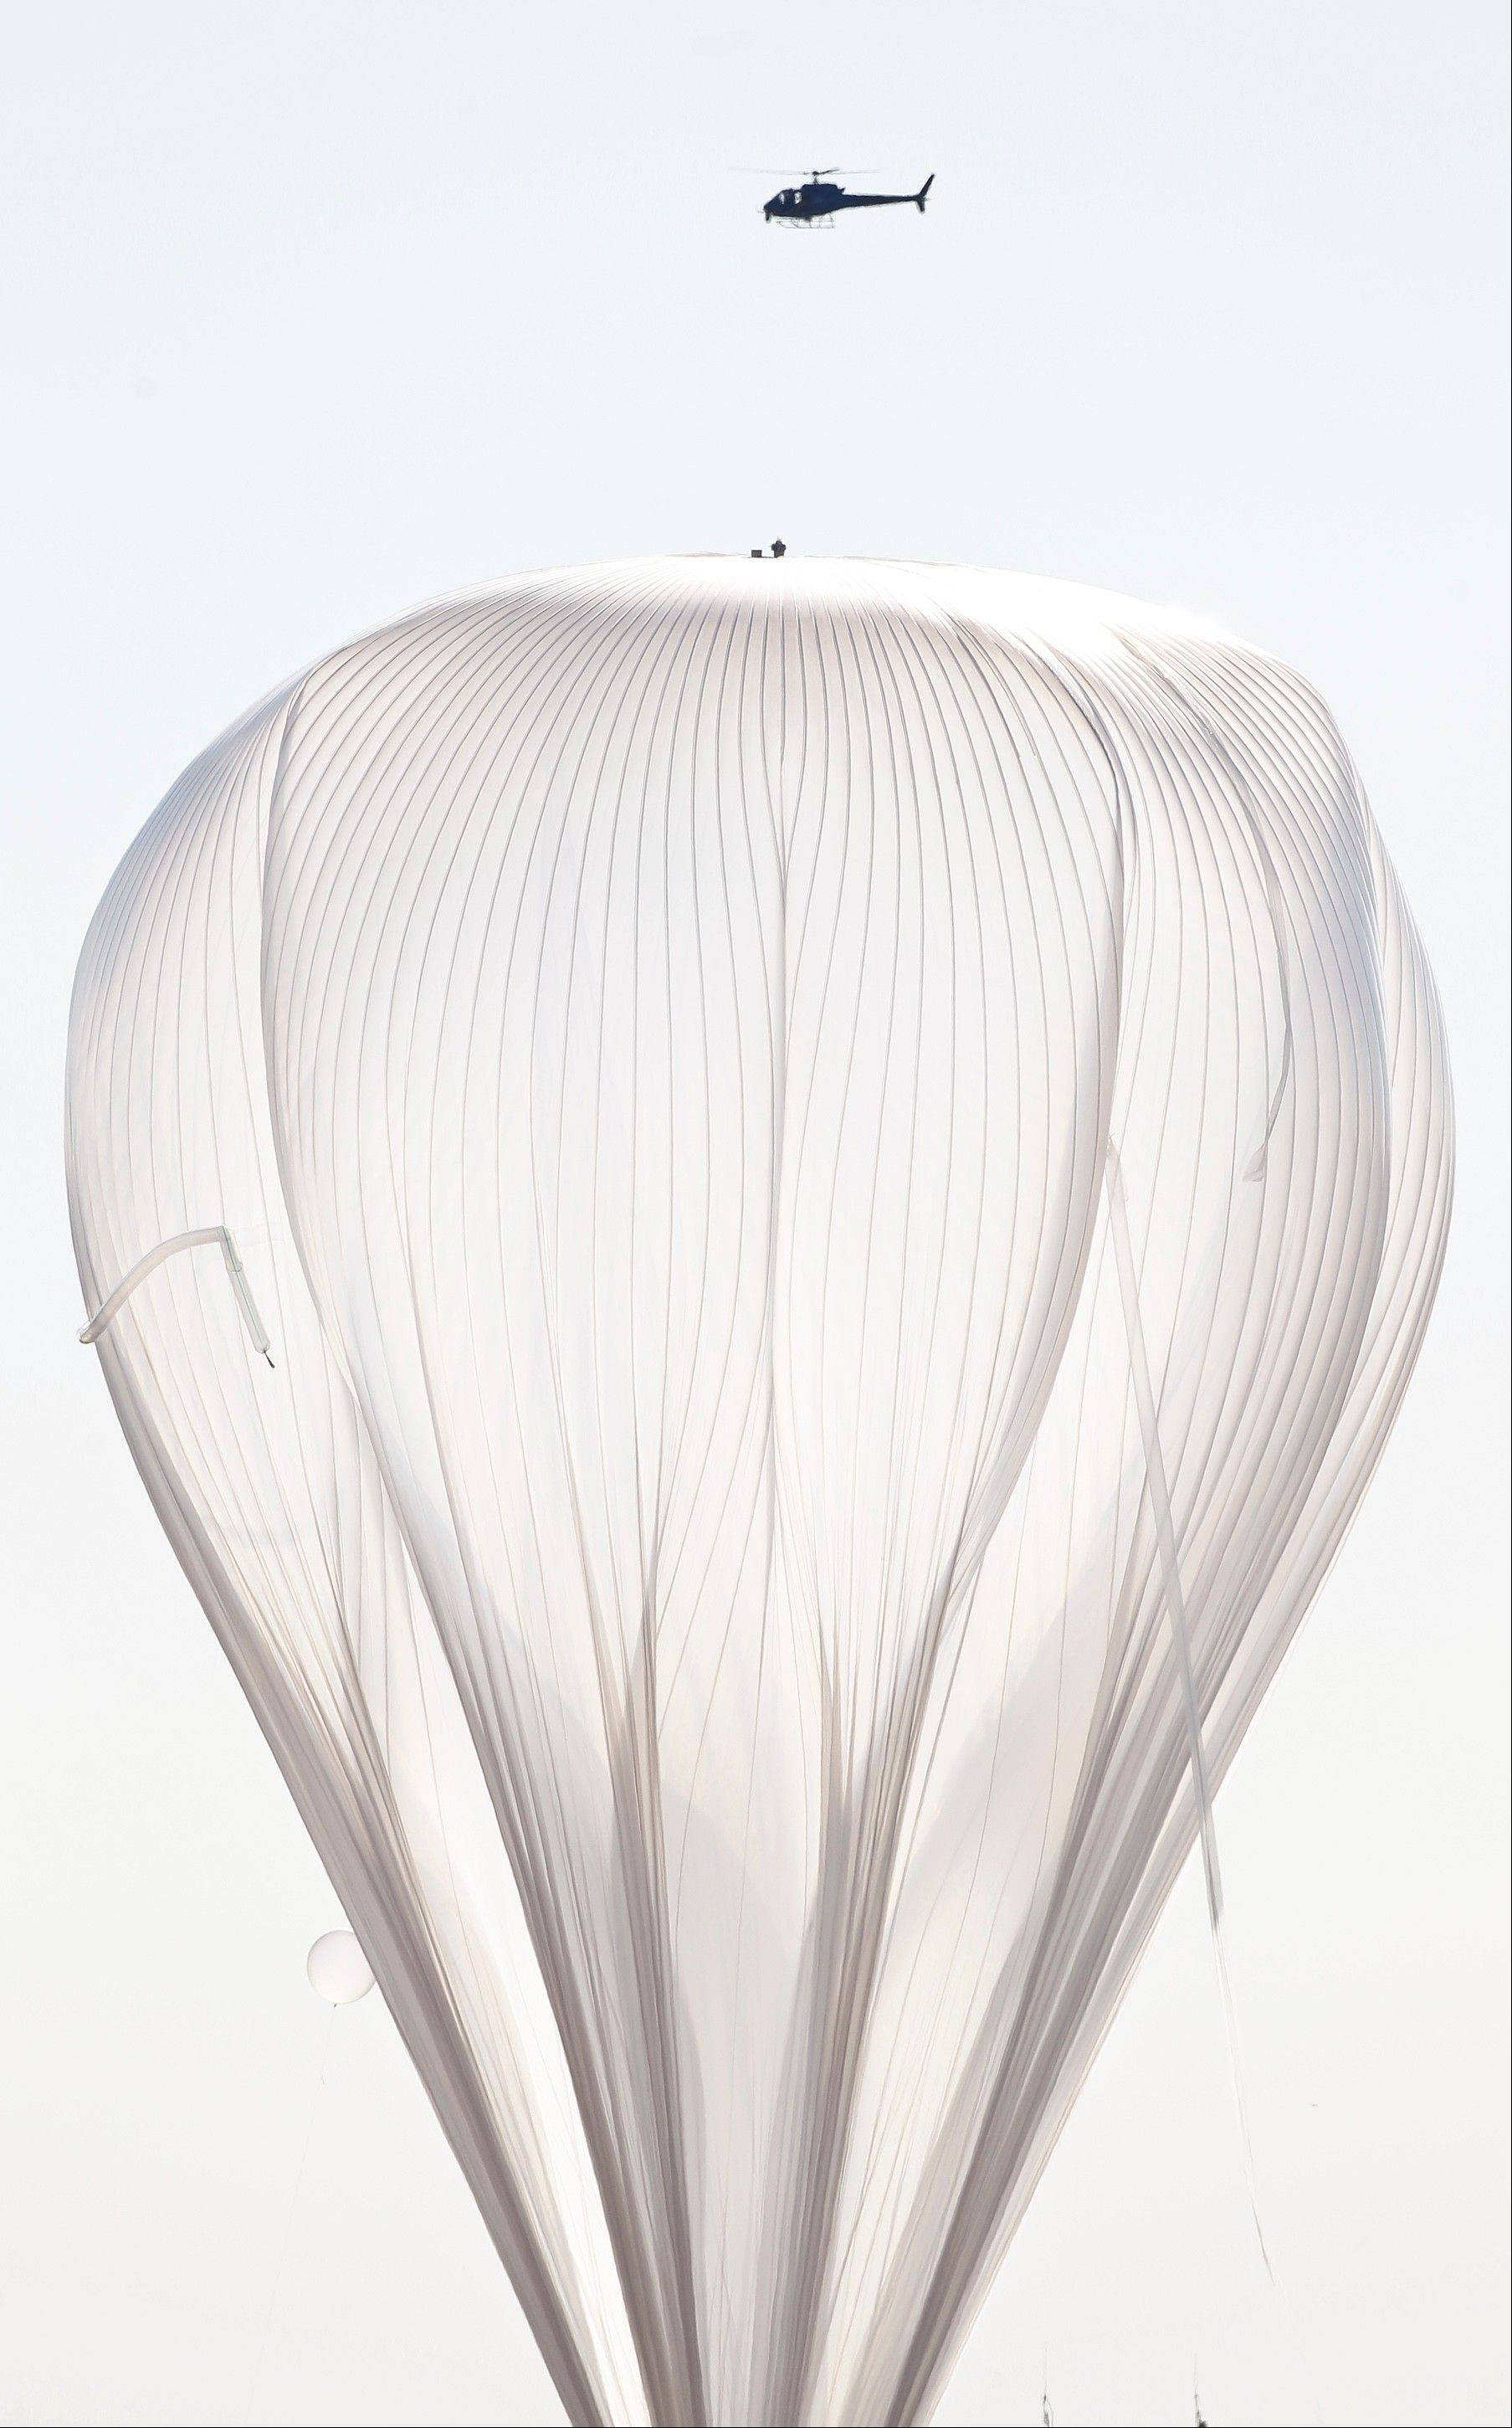 A helicopter hovers above the helium balloon, attached to the capsule carrying Felix Baumgartner, before he attempts to break the speed of sound with his own body by jumping from the space capsule, Sunday, Oct. 14, 2012, in Roswell, N.M. Baumgartner plans to jump from an altitude of 120,000 feet, an altitude chosen to enable him to achieve Mach 1 in free fall, which would deliver scientific data to the aerospace community about human survival from high altitudes.